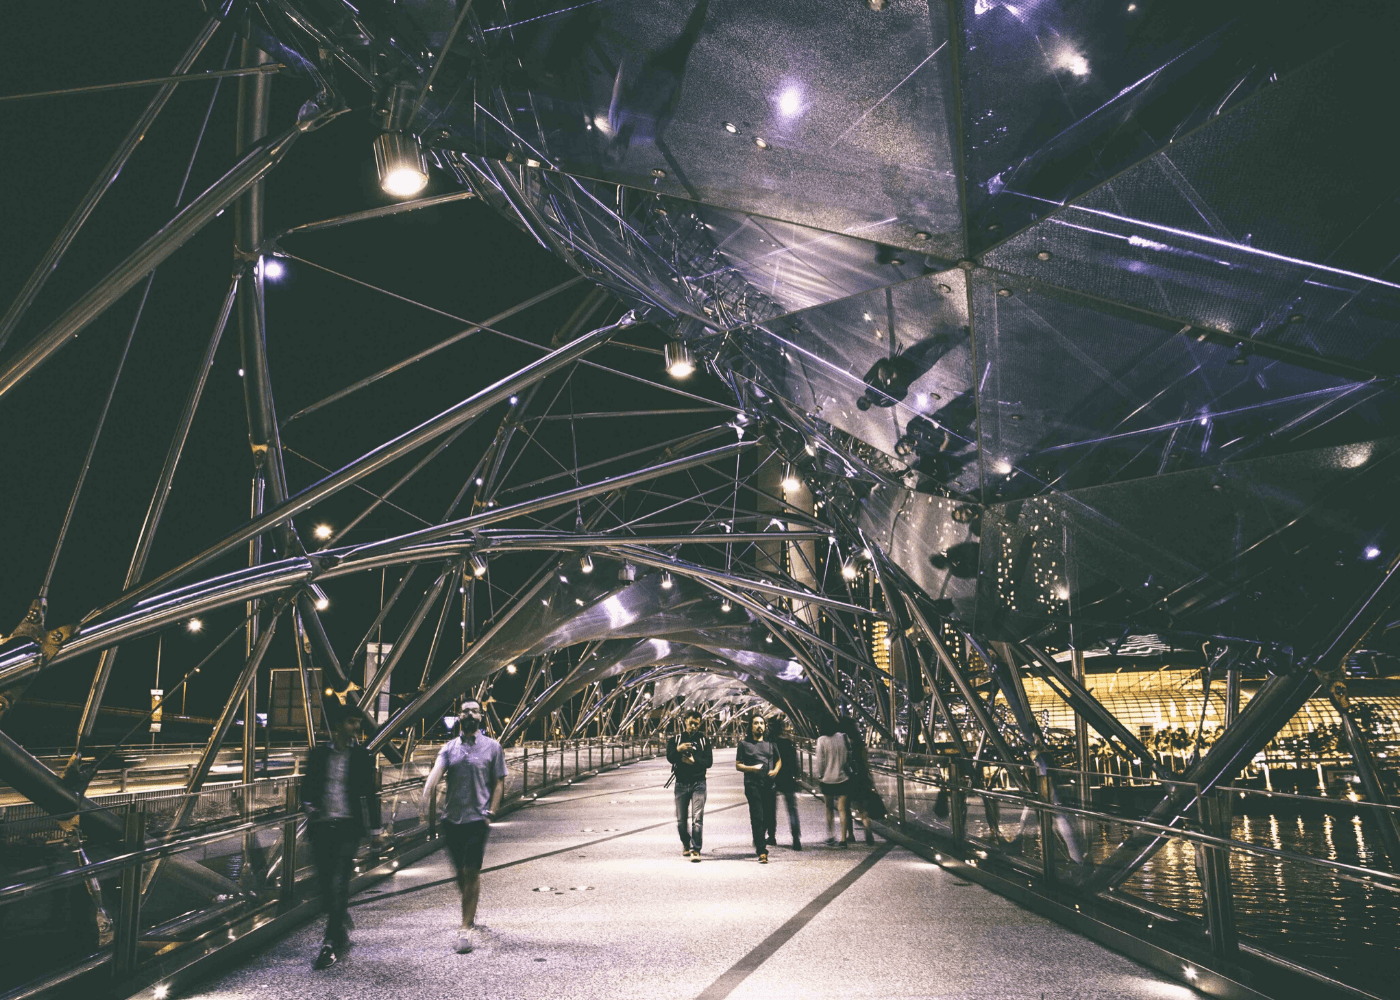 Helix Bridge | Things to do at night in Singapore